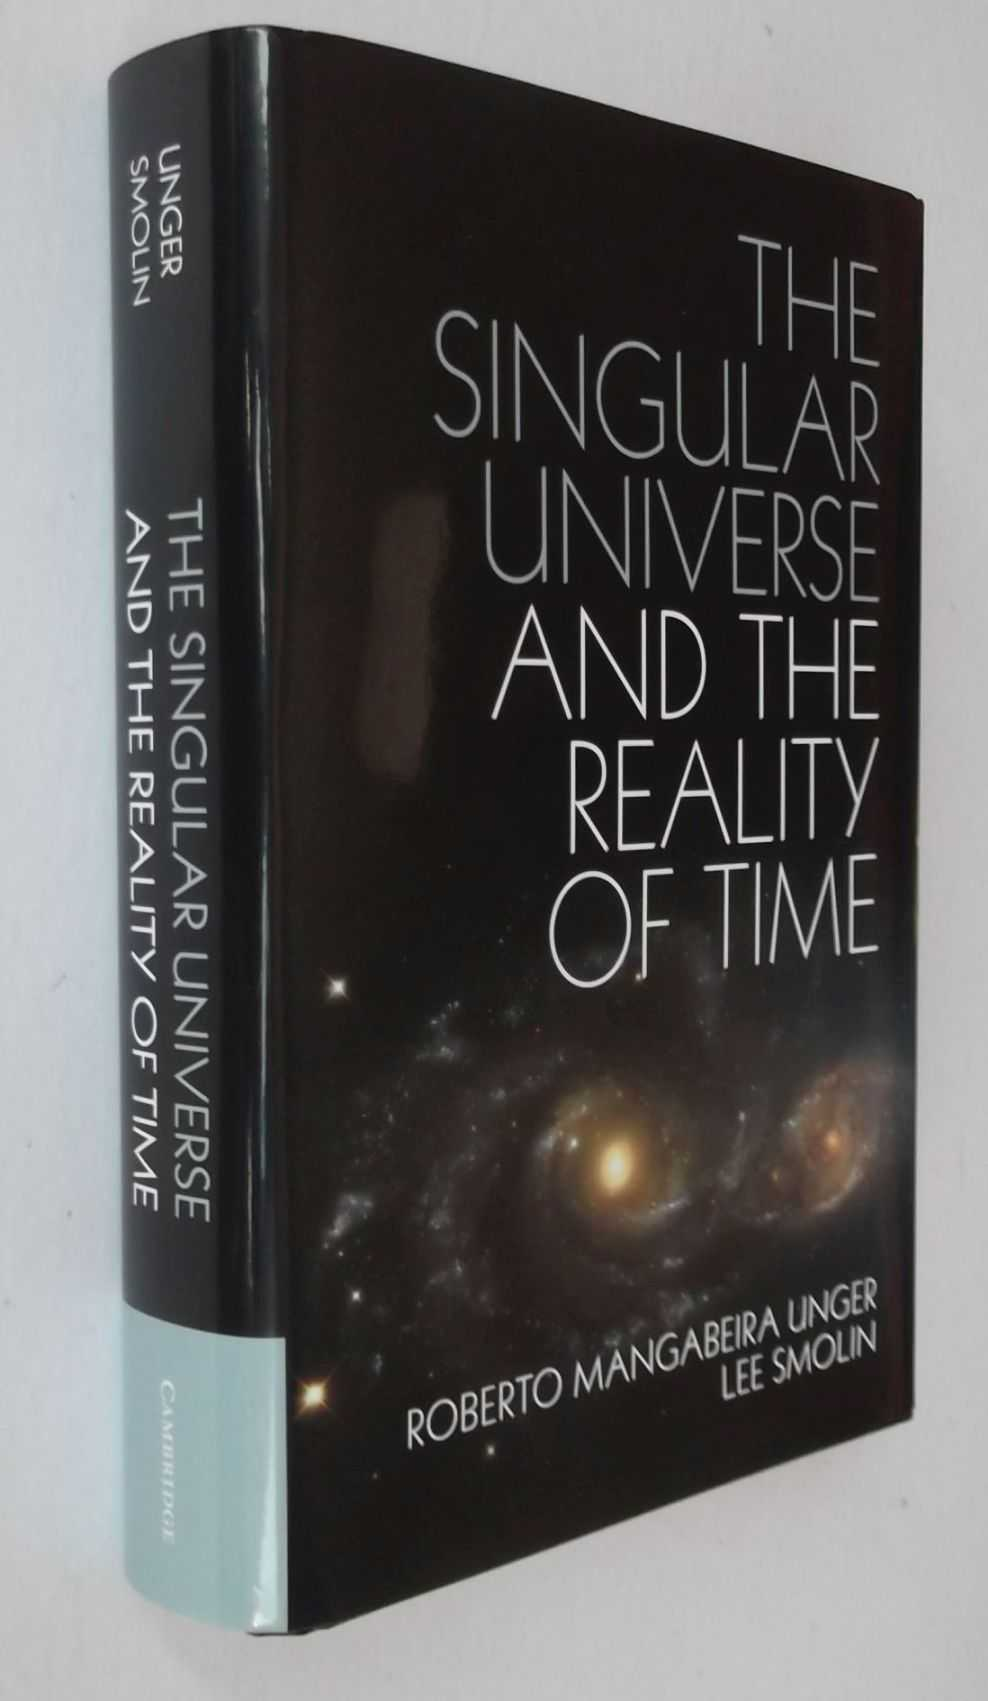 ROBERTO MANGABEIRA UNGER - The Singular Universe and the Reality of Time: A Proposal in Natural Philosophy